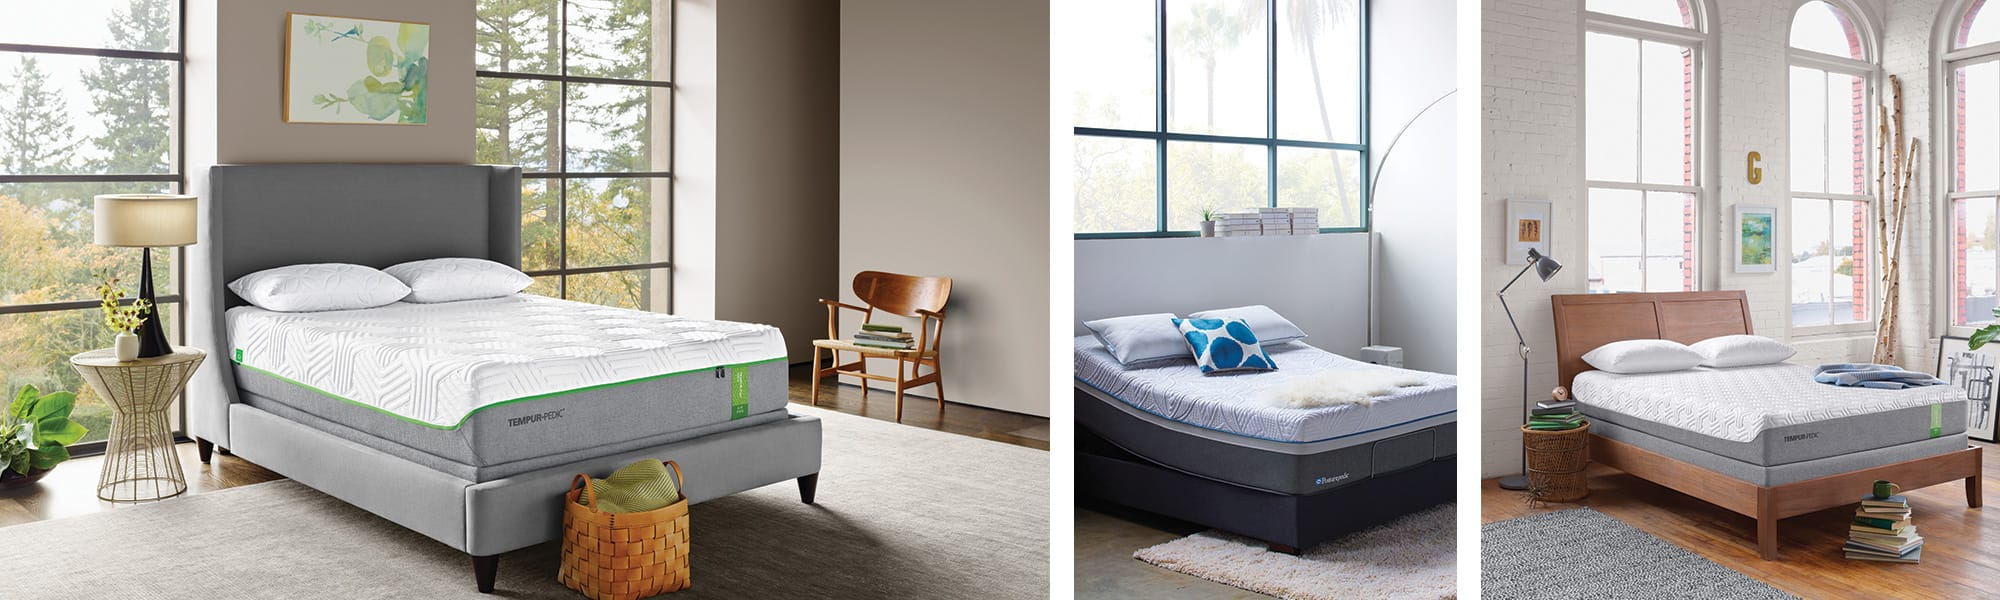 Tempur Sealy lifestyle images